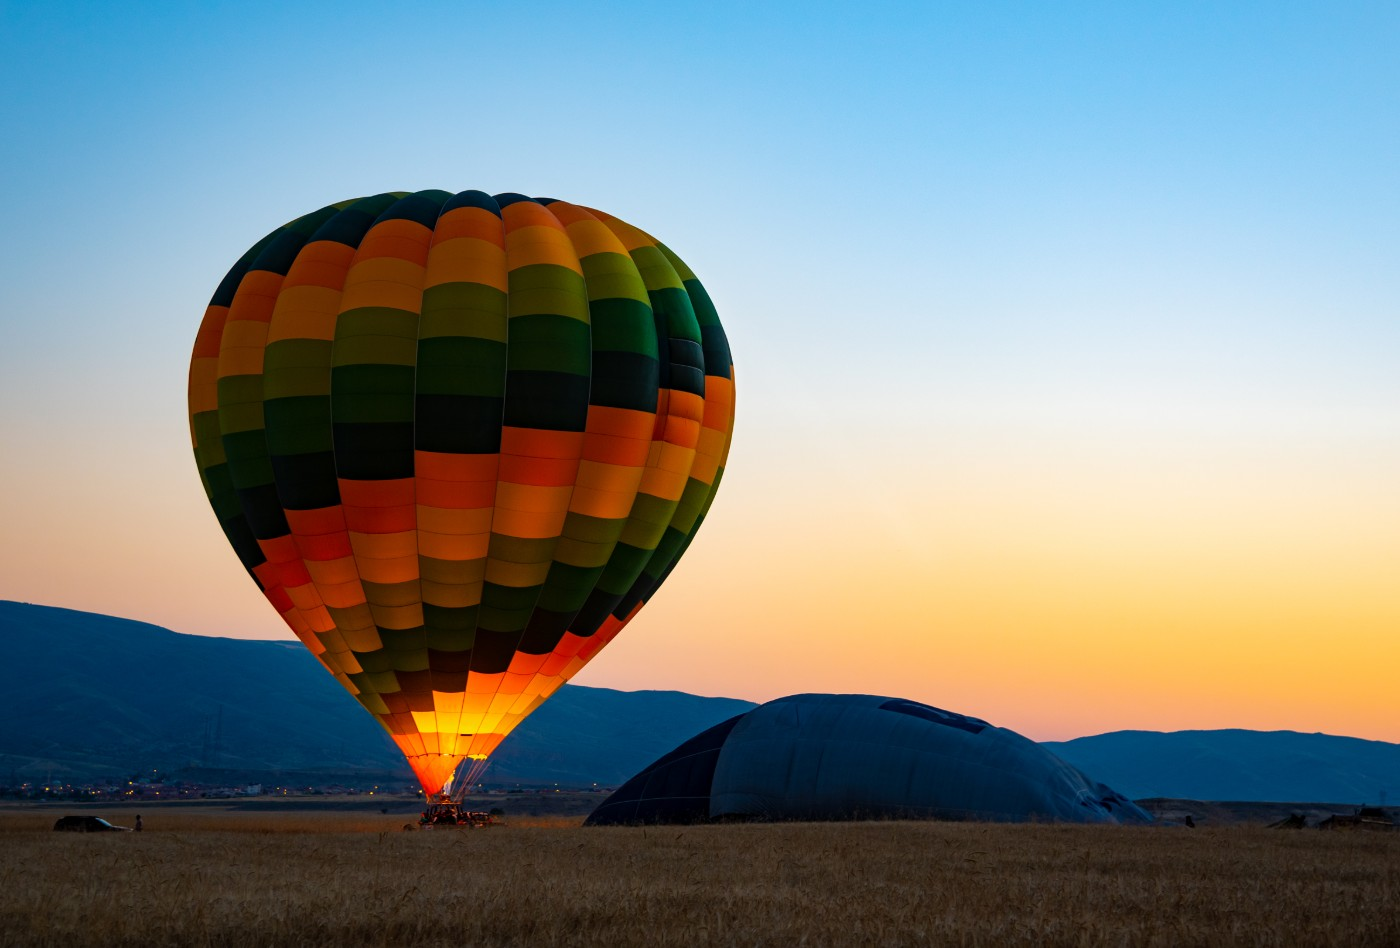 https://tickertapecdn.tdameritrade.com/assets/images/pages/md/Hot air balloon: Protect your portfolio from inflation